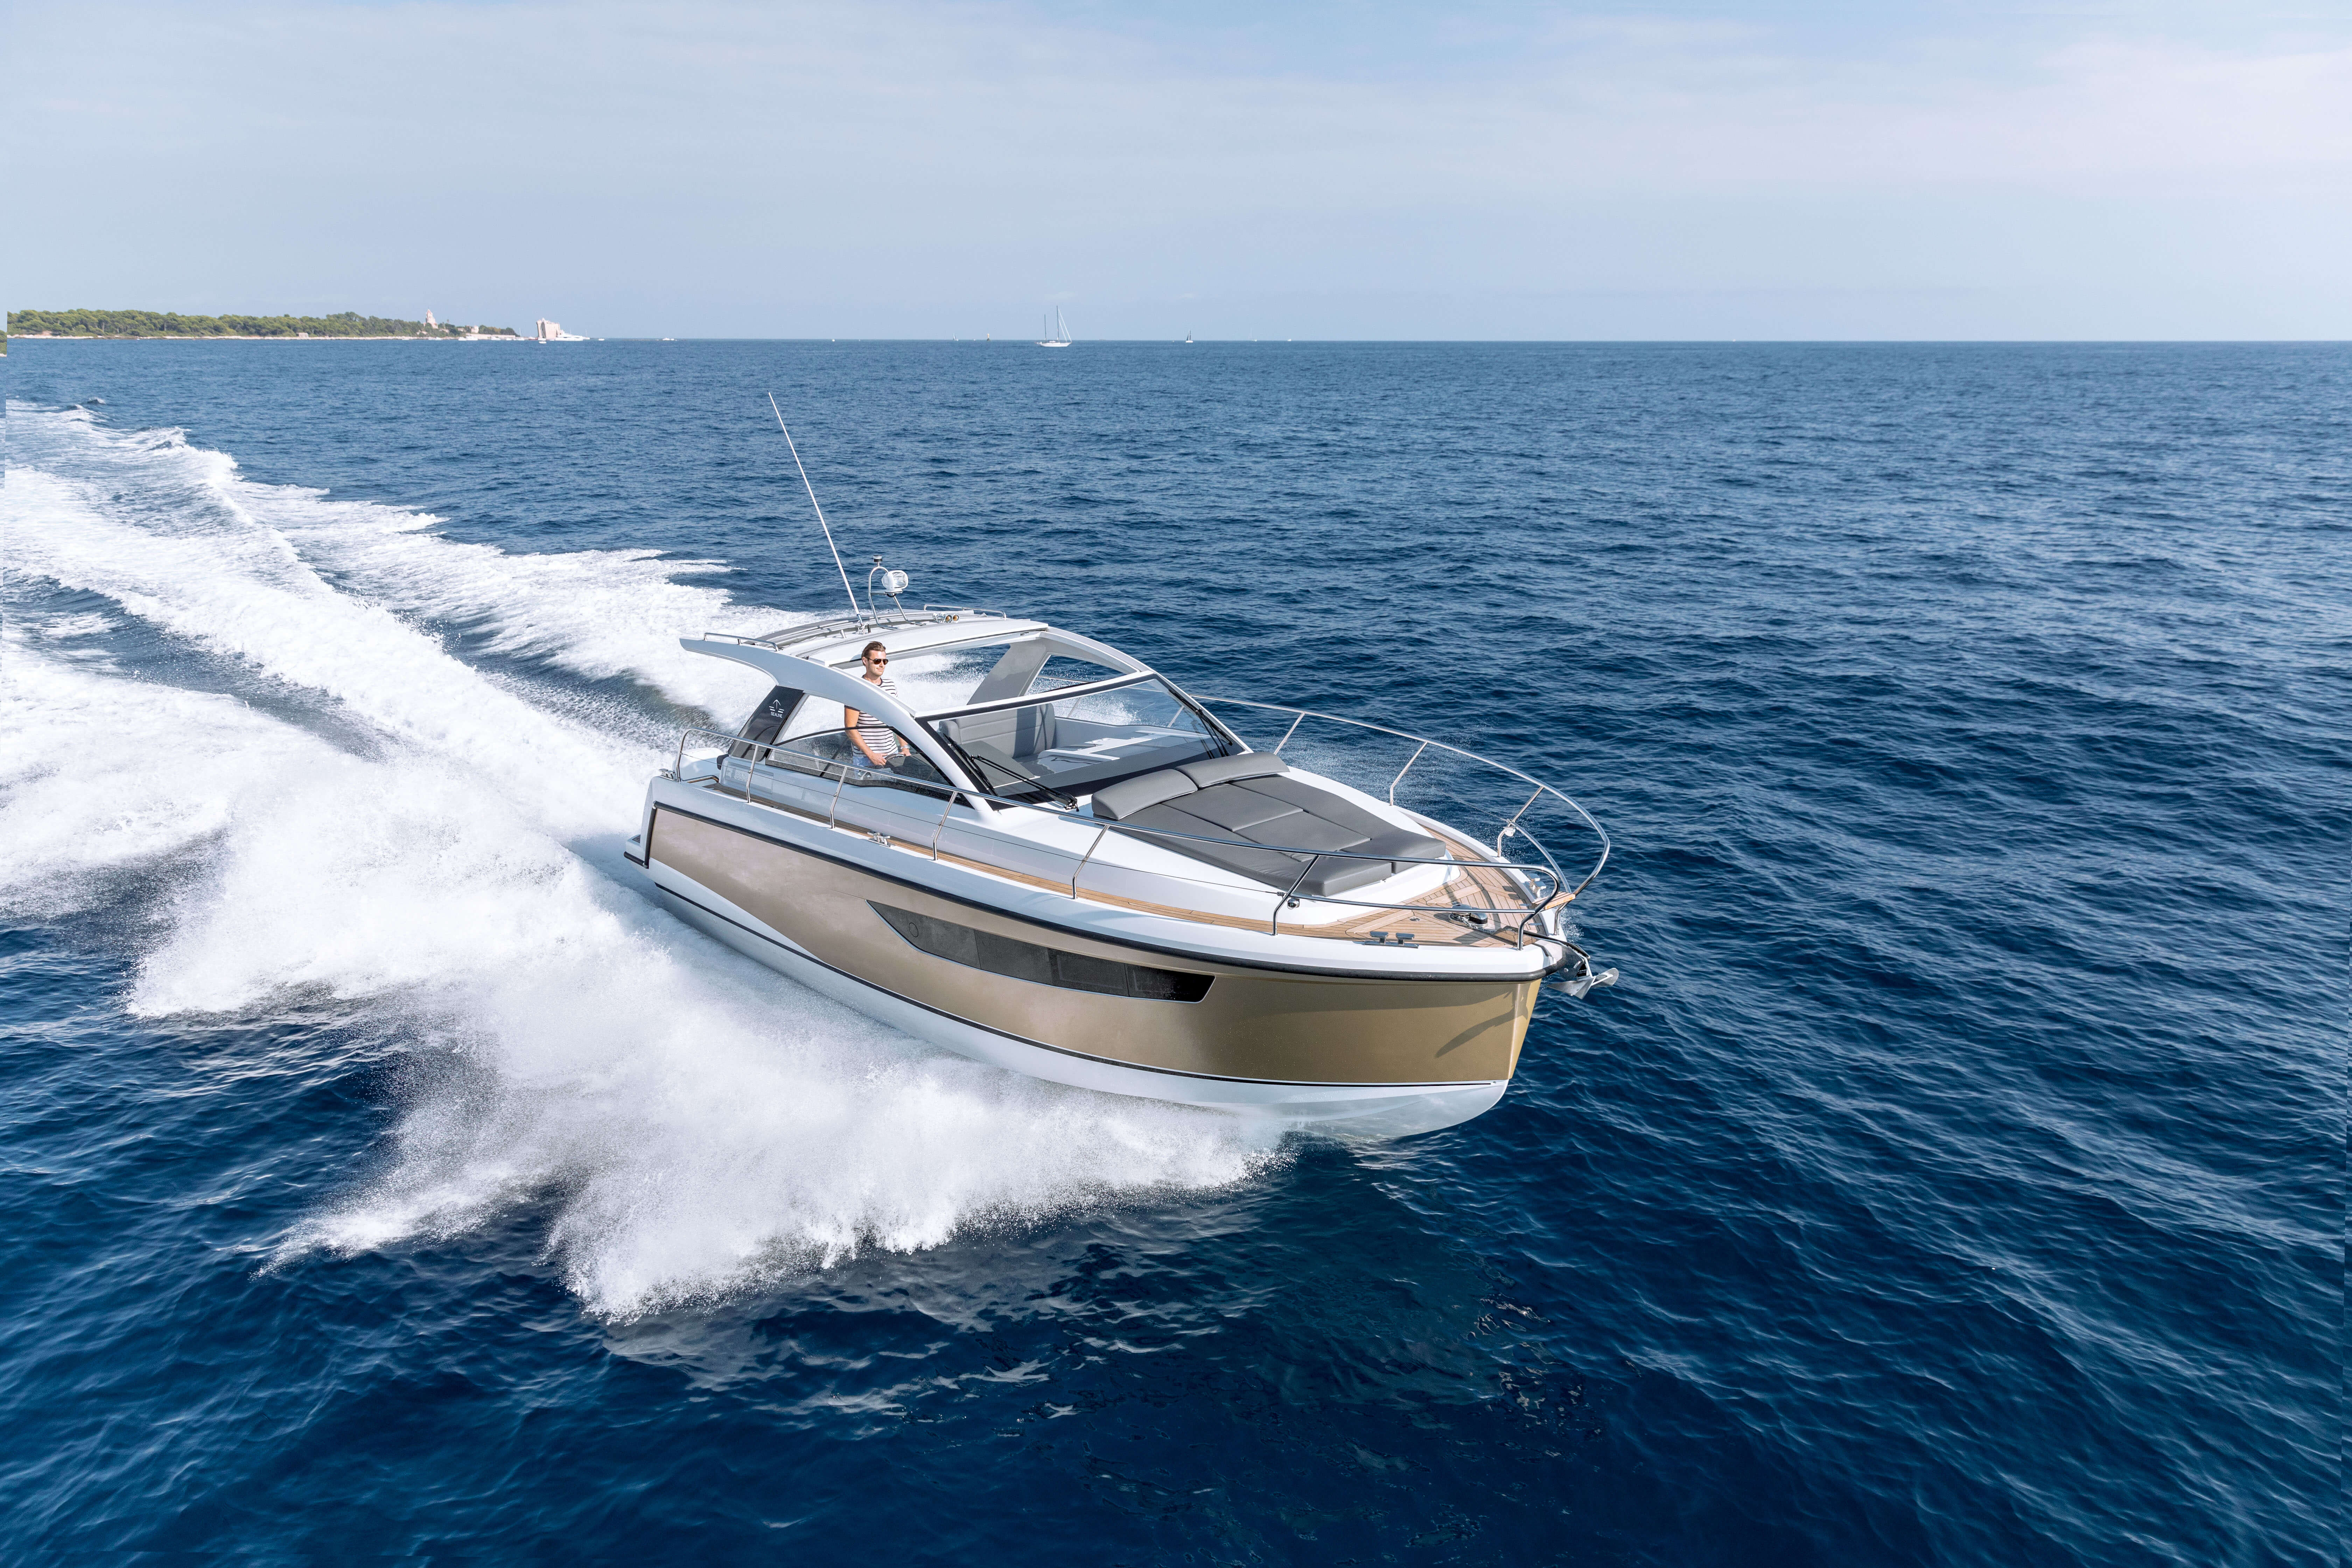 Sealine S330v exterior | When you slide open the sunroof and retract the bimini over the cockpit, you will get the maximum of daylight. | Sealine